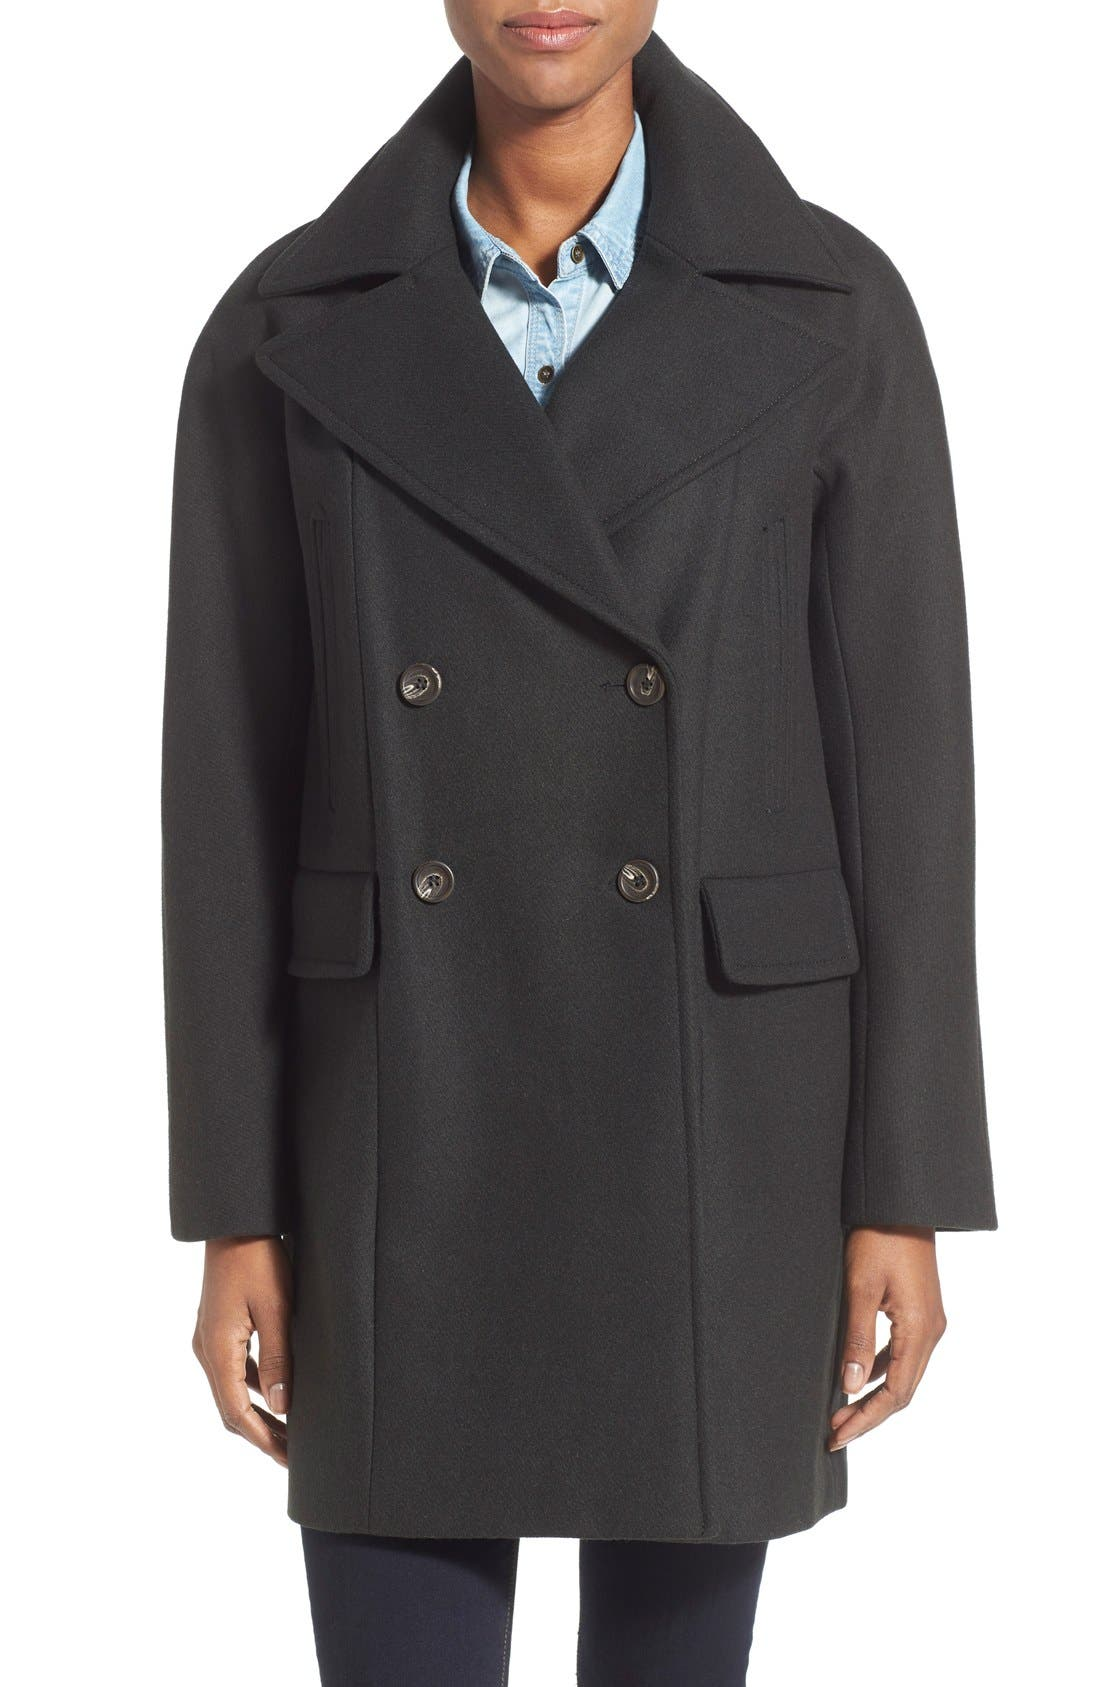 Main Image - Vince Camuto Double Breasted Peacoat